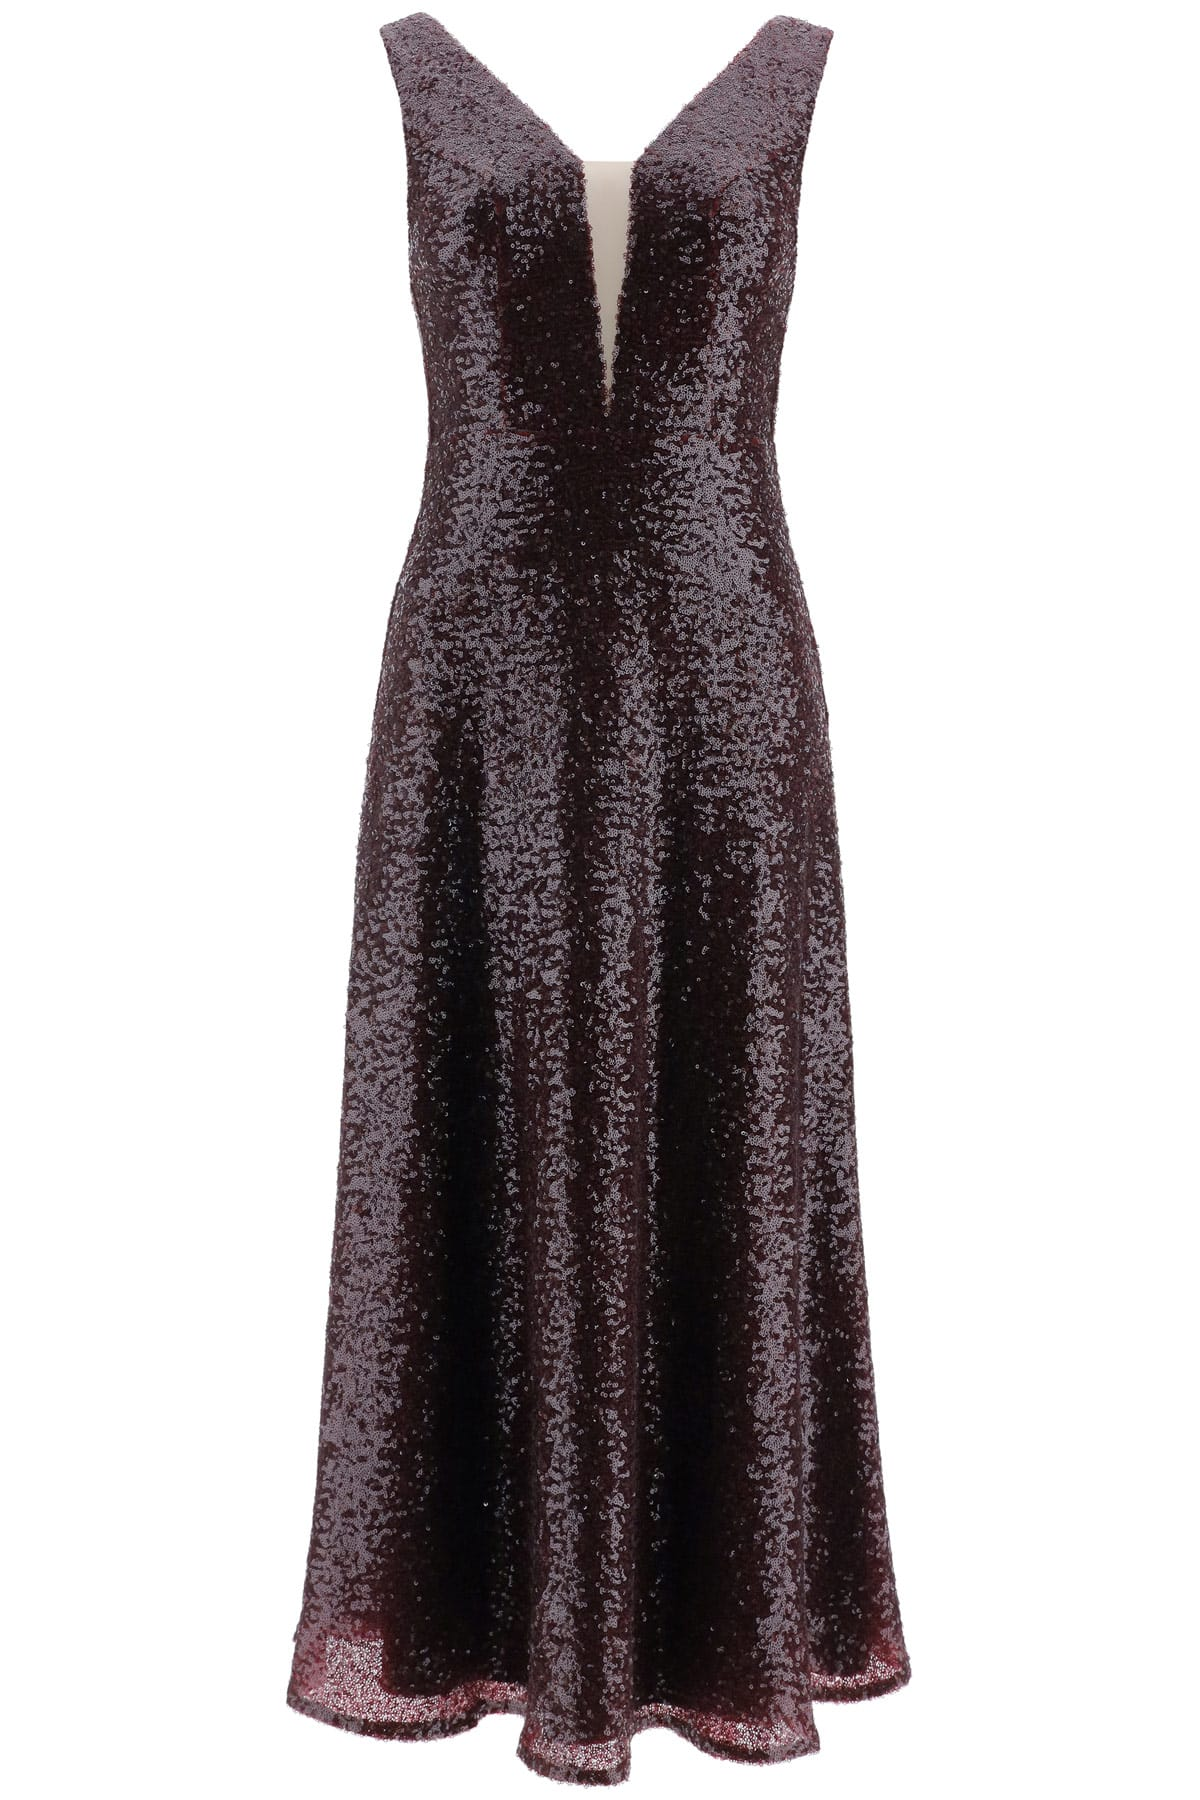 Buy In The Mood For Love Leander Sequined Dress online, shop In The Mood For Love with free shipping